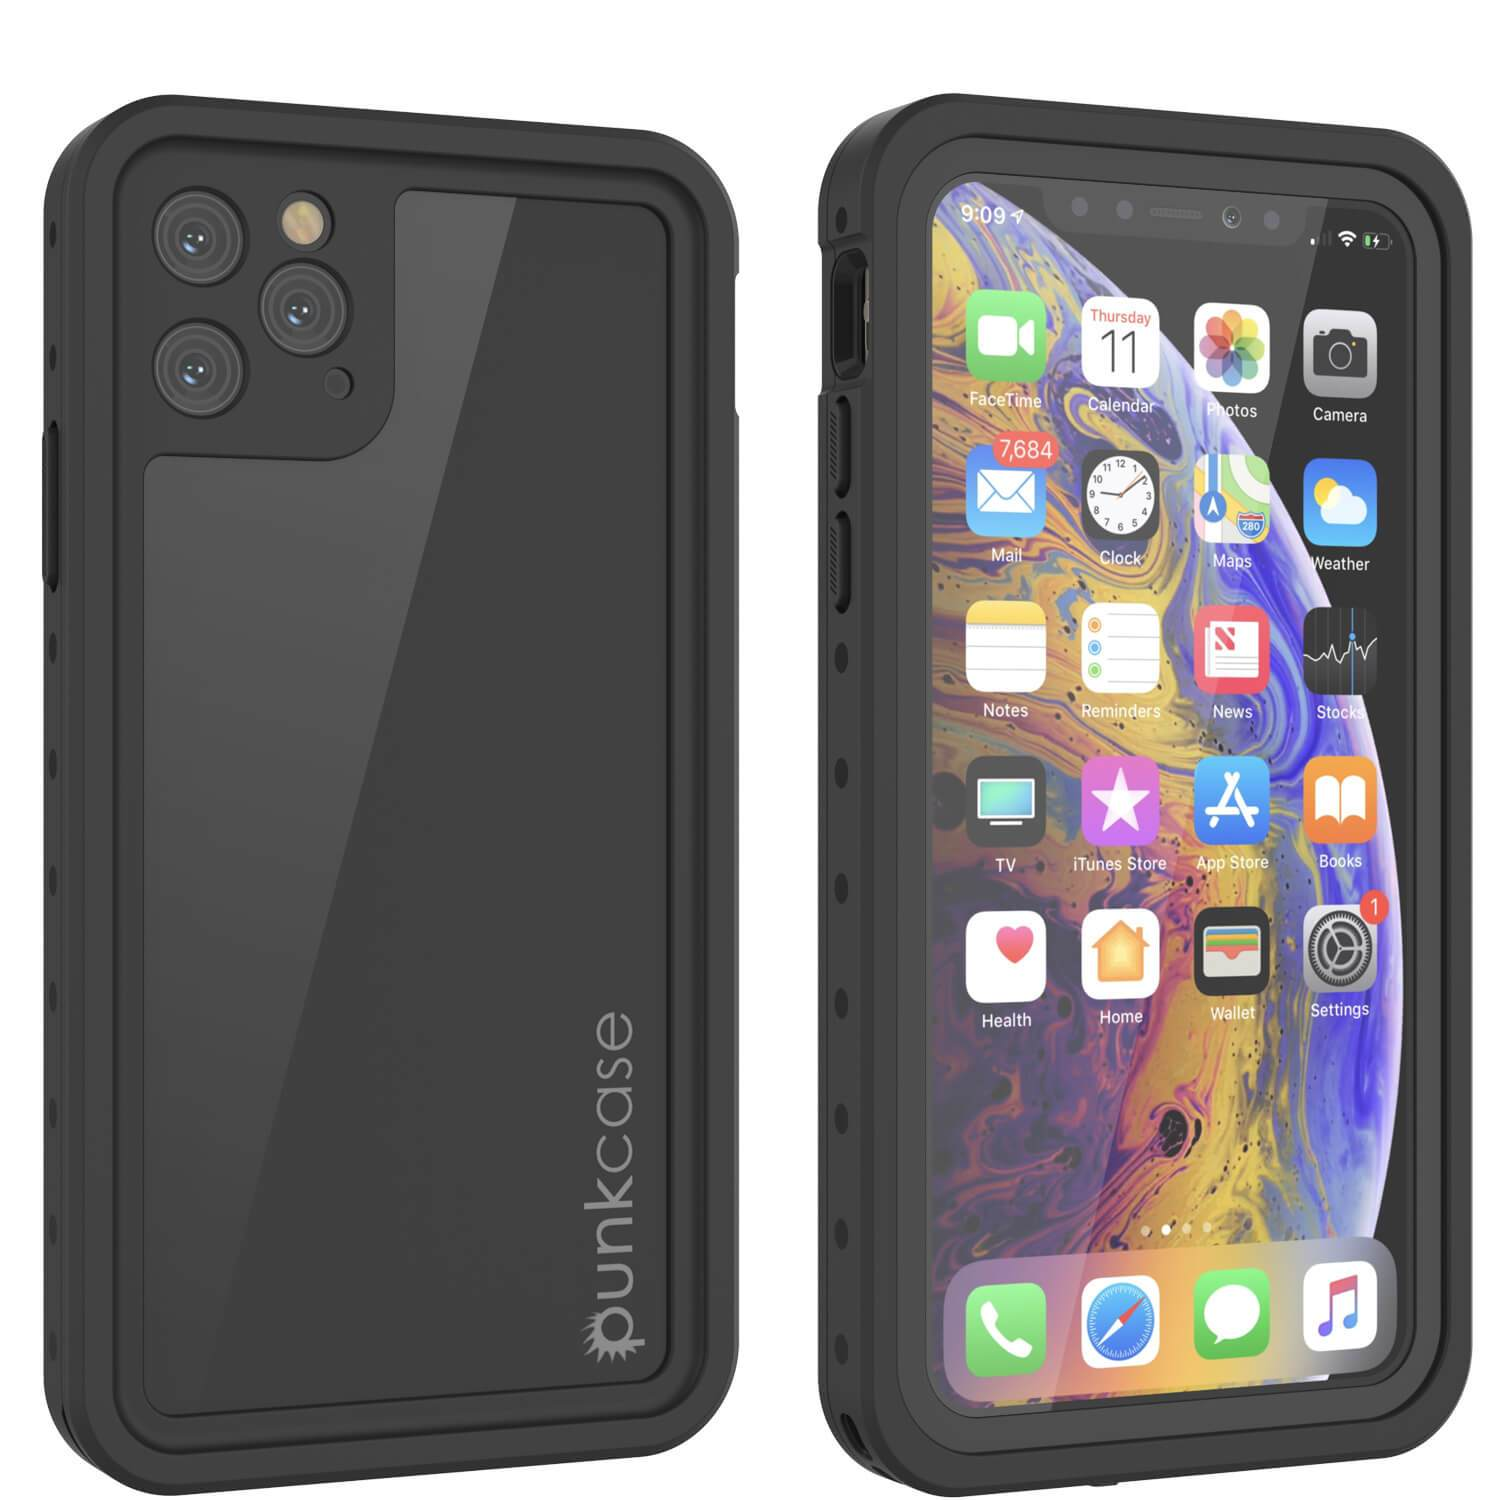 iPhone 11 Pro Waterproof IP68 Case, Punkcase [Black] [StudStar Series] [Slim Fit]